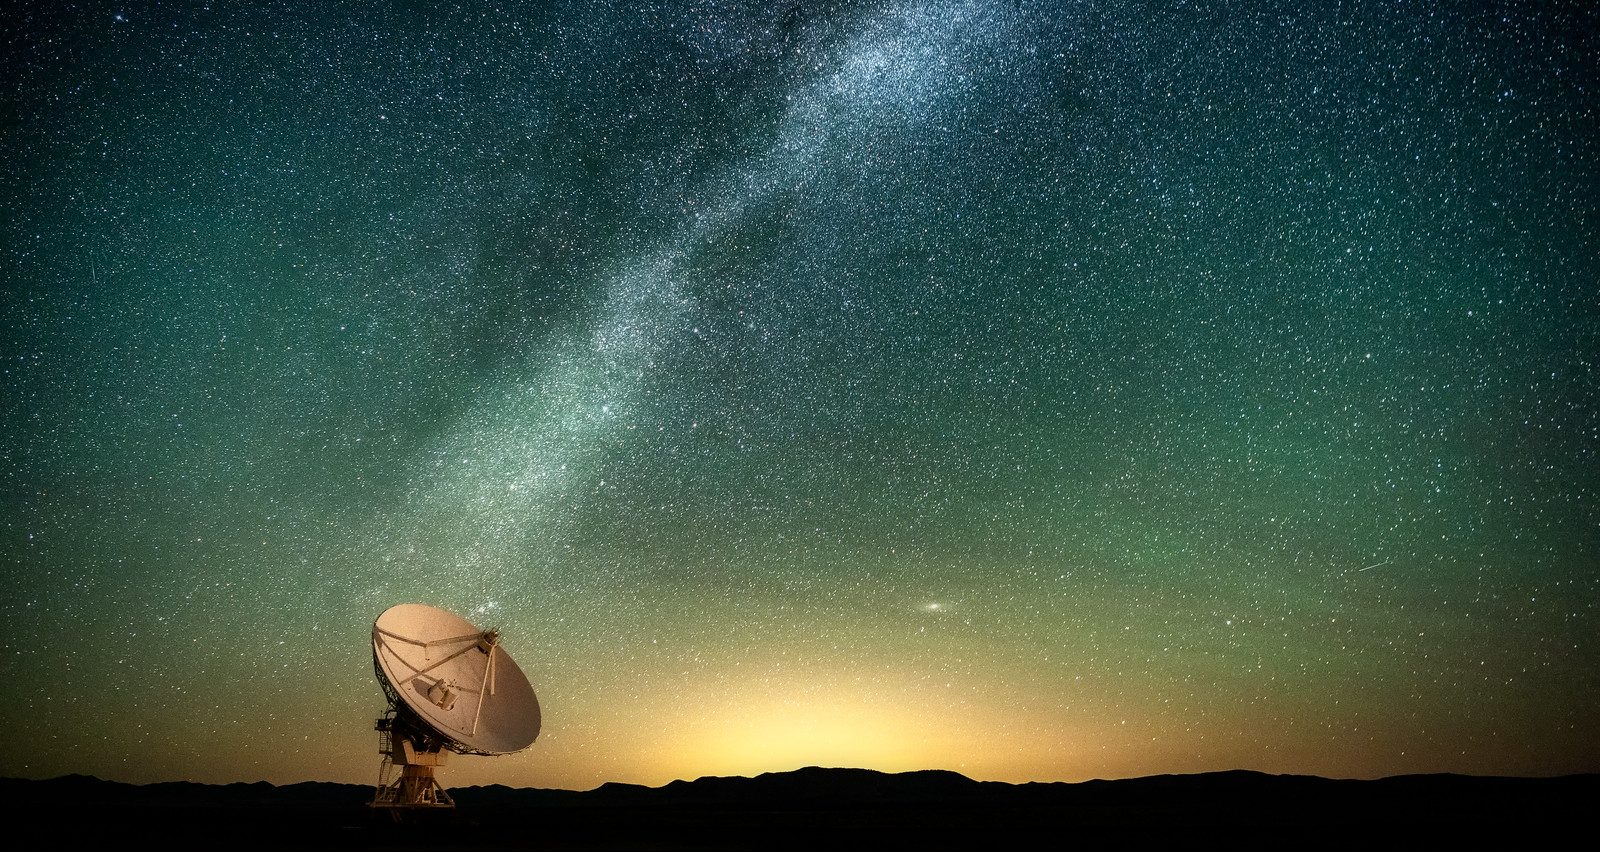 Radio telescope searching the night sky for alien signals